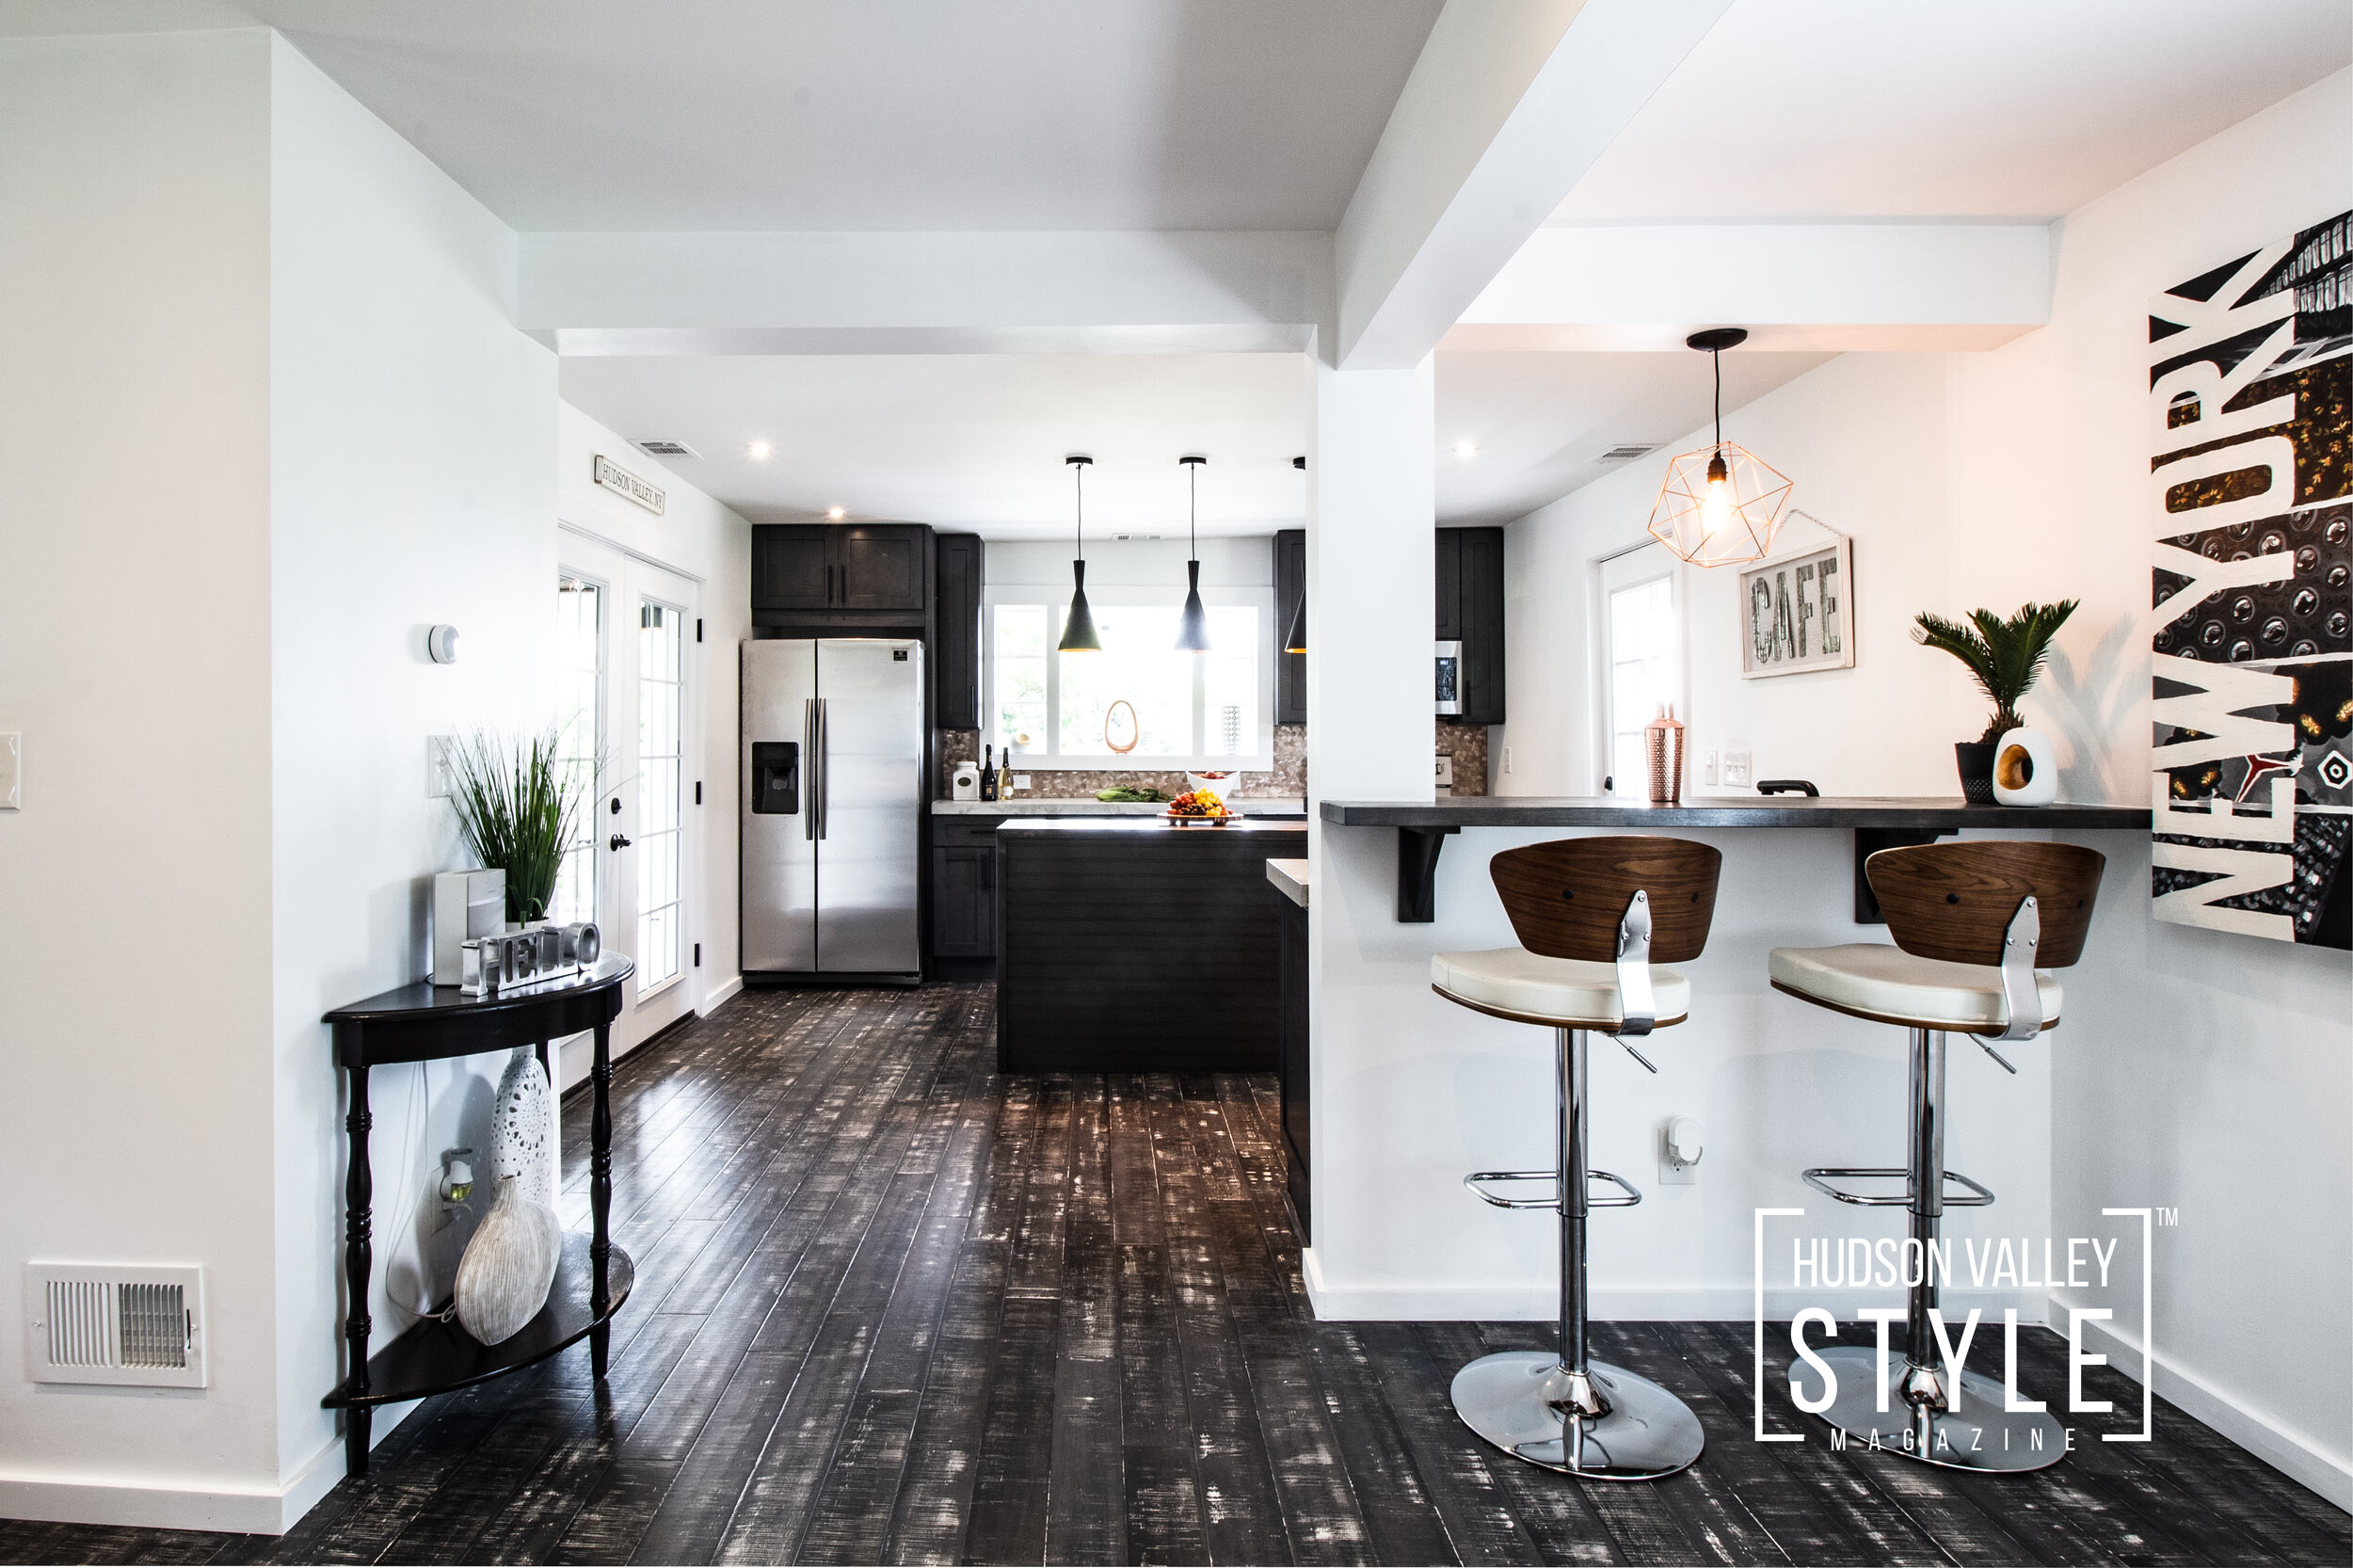 How to Choose the Best Real Estate Photographer for Your House Listing in the Hudson Valley – Presented by Duncan Avenue Studios